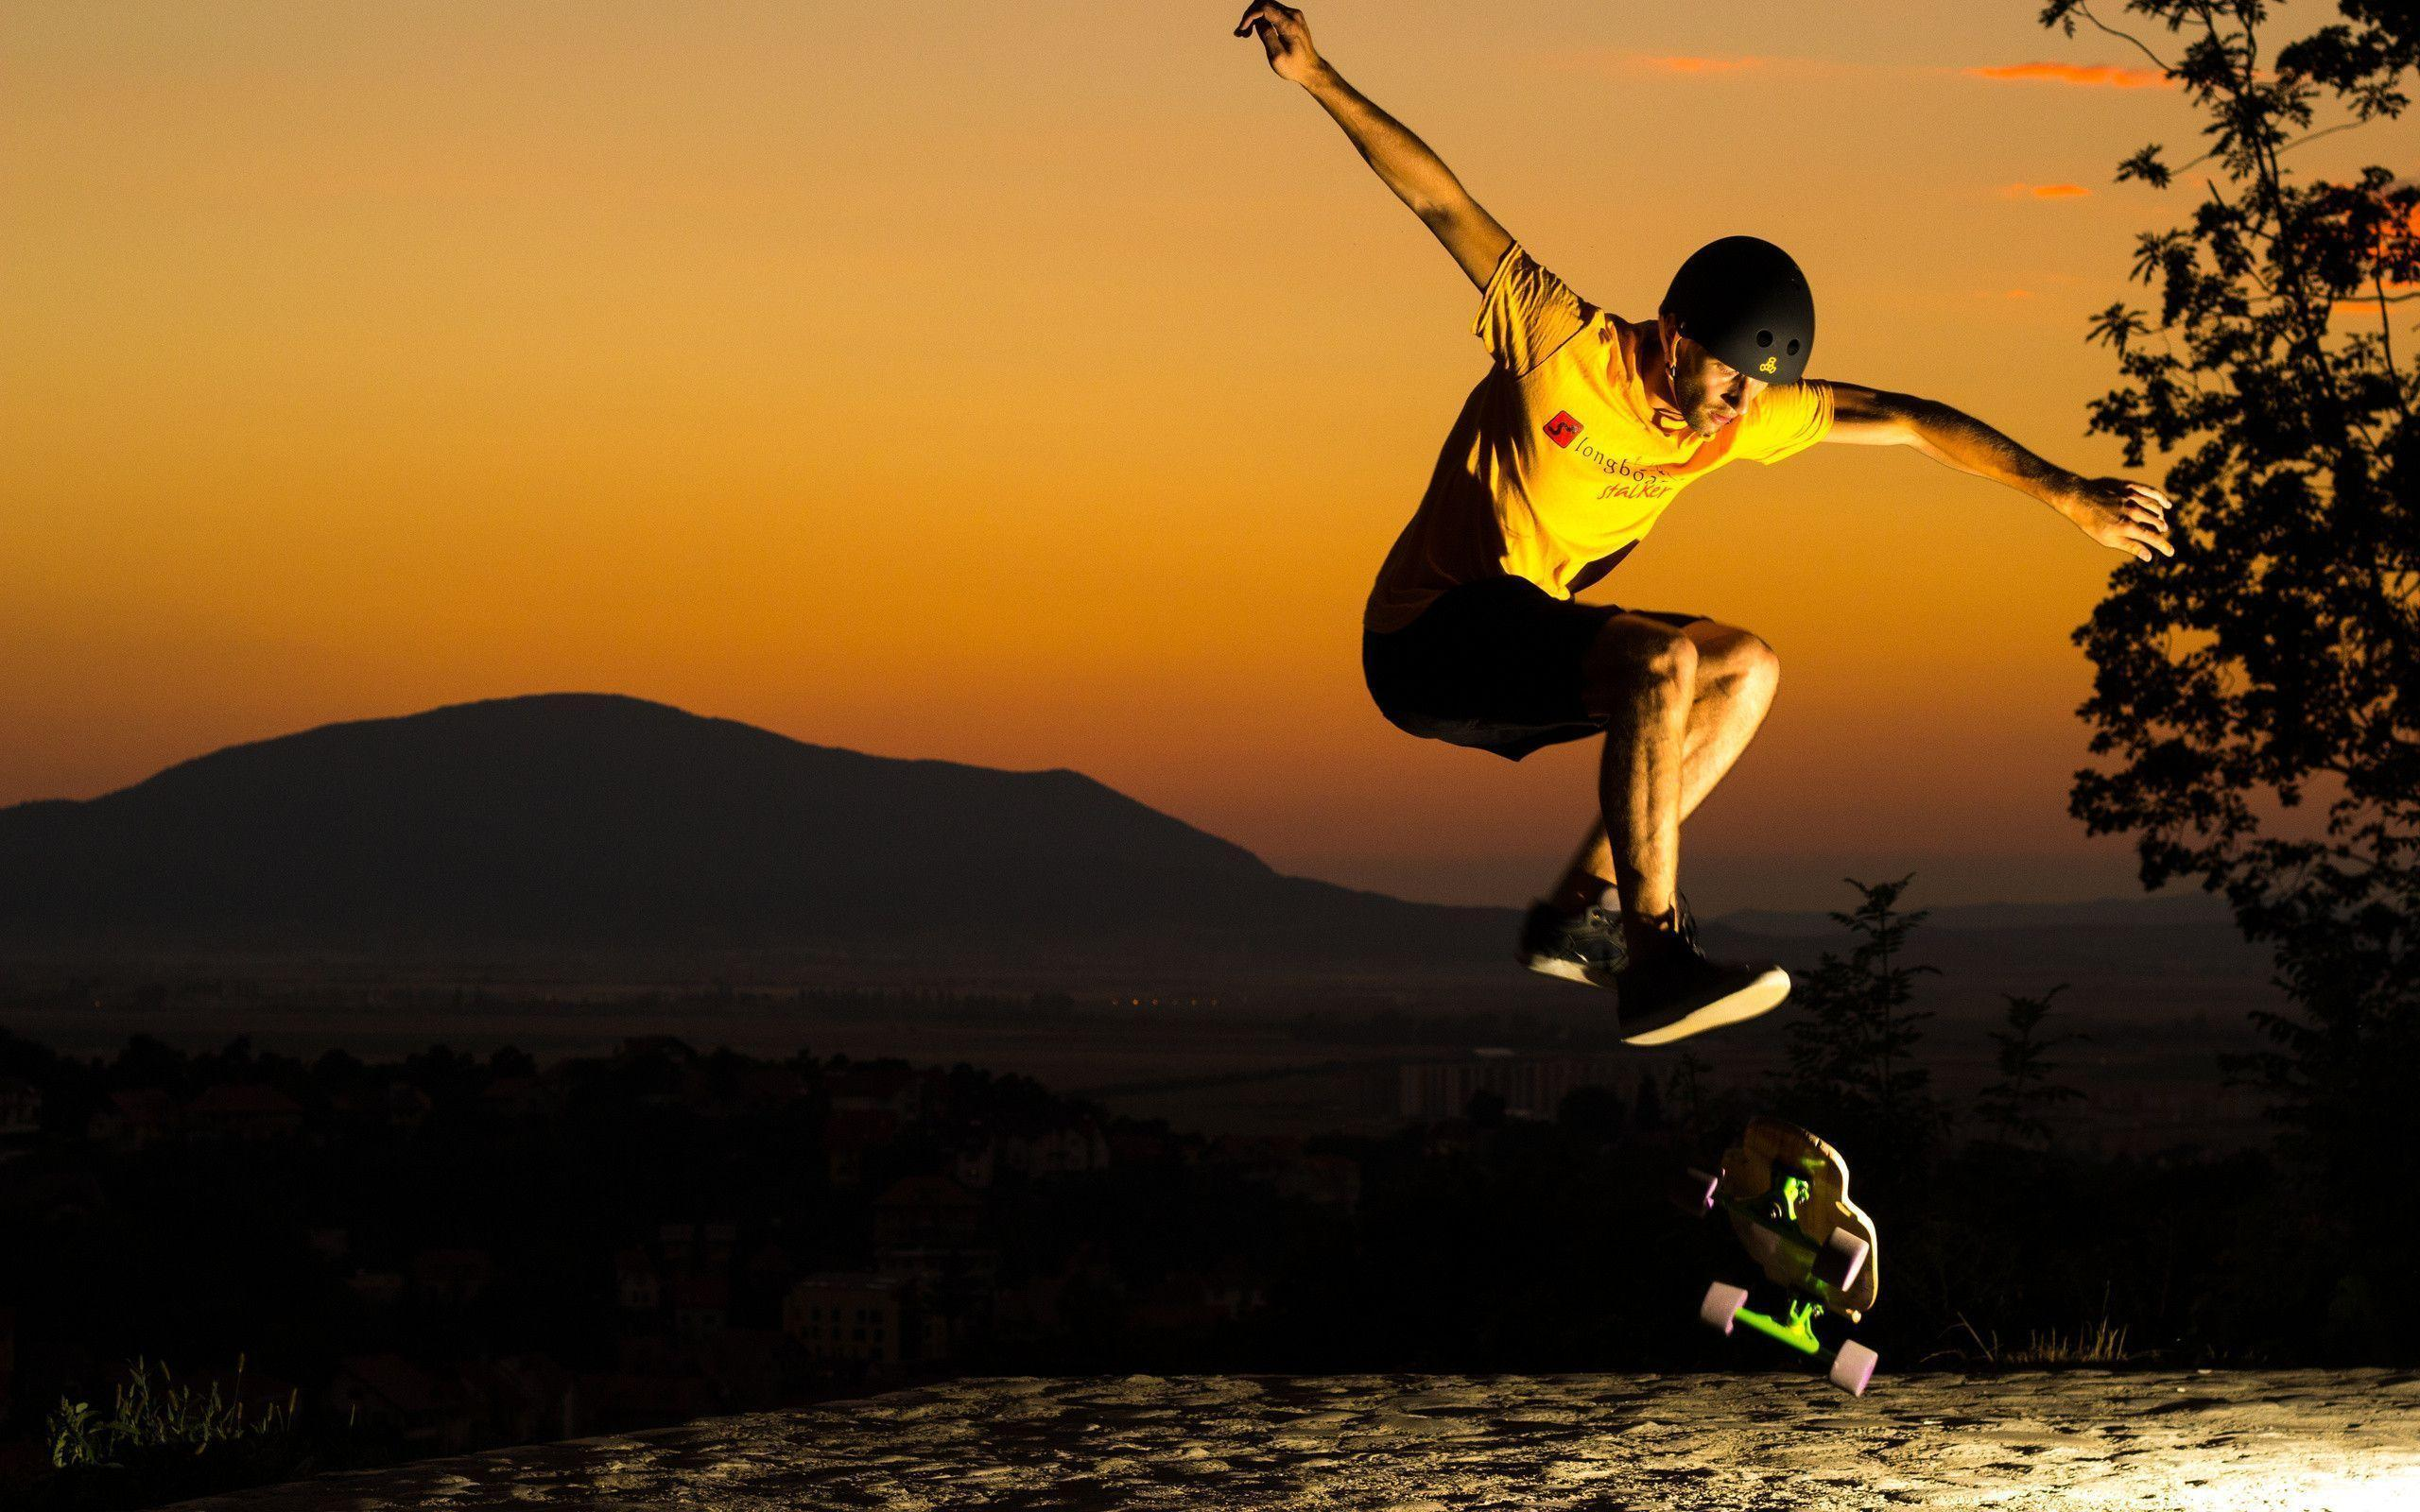 top longboarding wallpapers 1920x1080 - photo #28